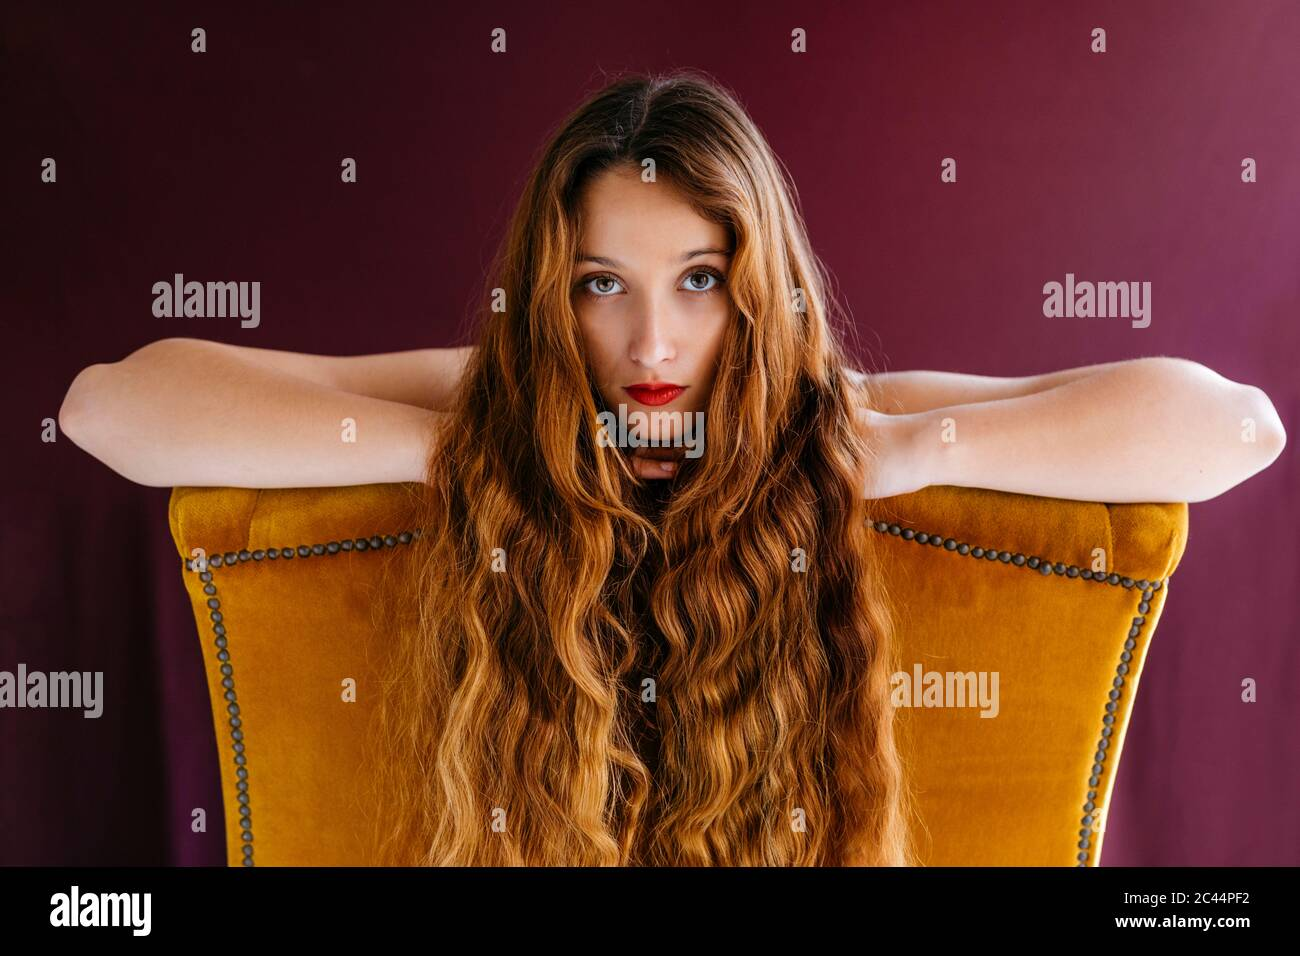 Portrait of young female fashion model with long brown wavy hair leaning on golden chair against colored background Stock Photo